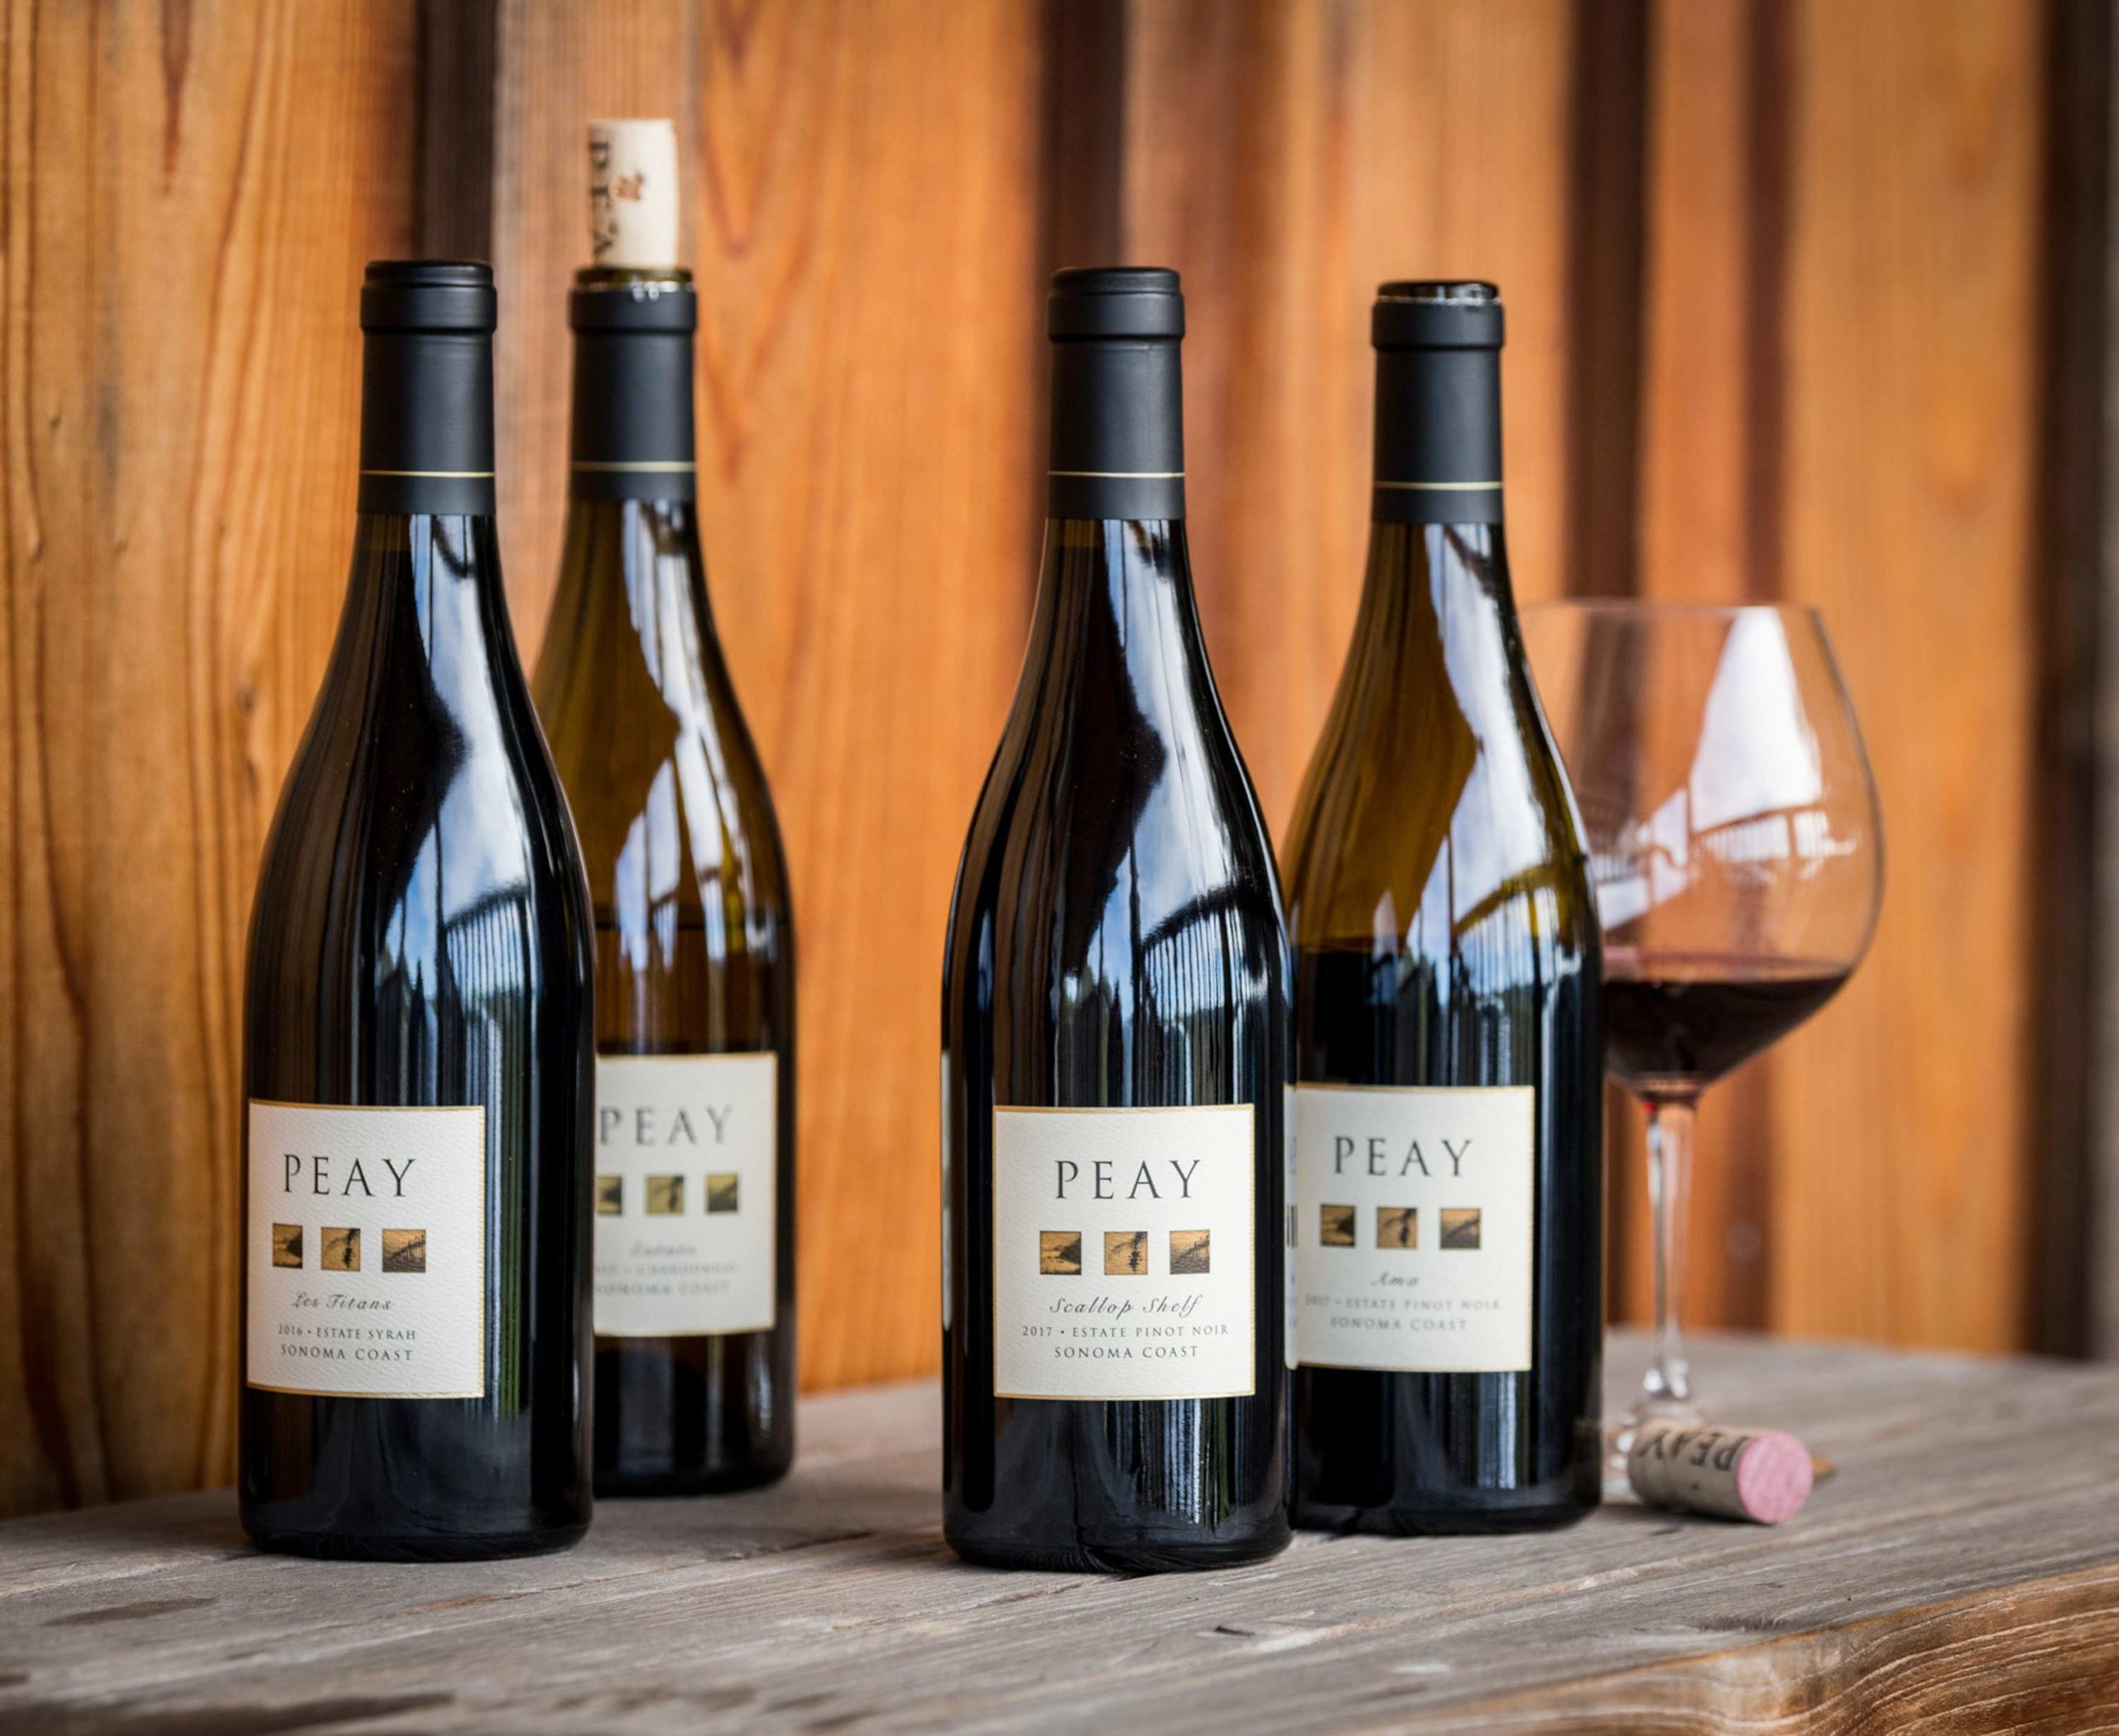 Featured image for Article: 2012 Peay Vineyards Scallop Shelf Estate Pinot noir, Sonoma Coast